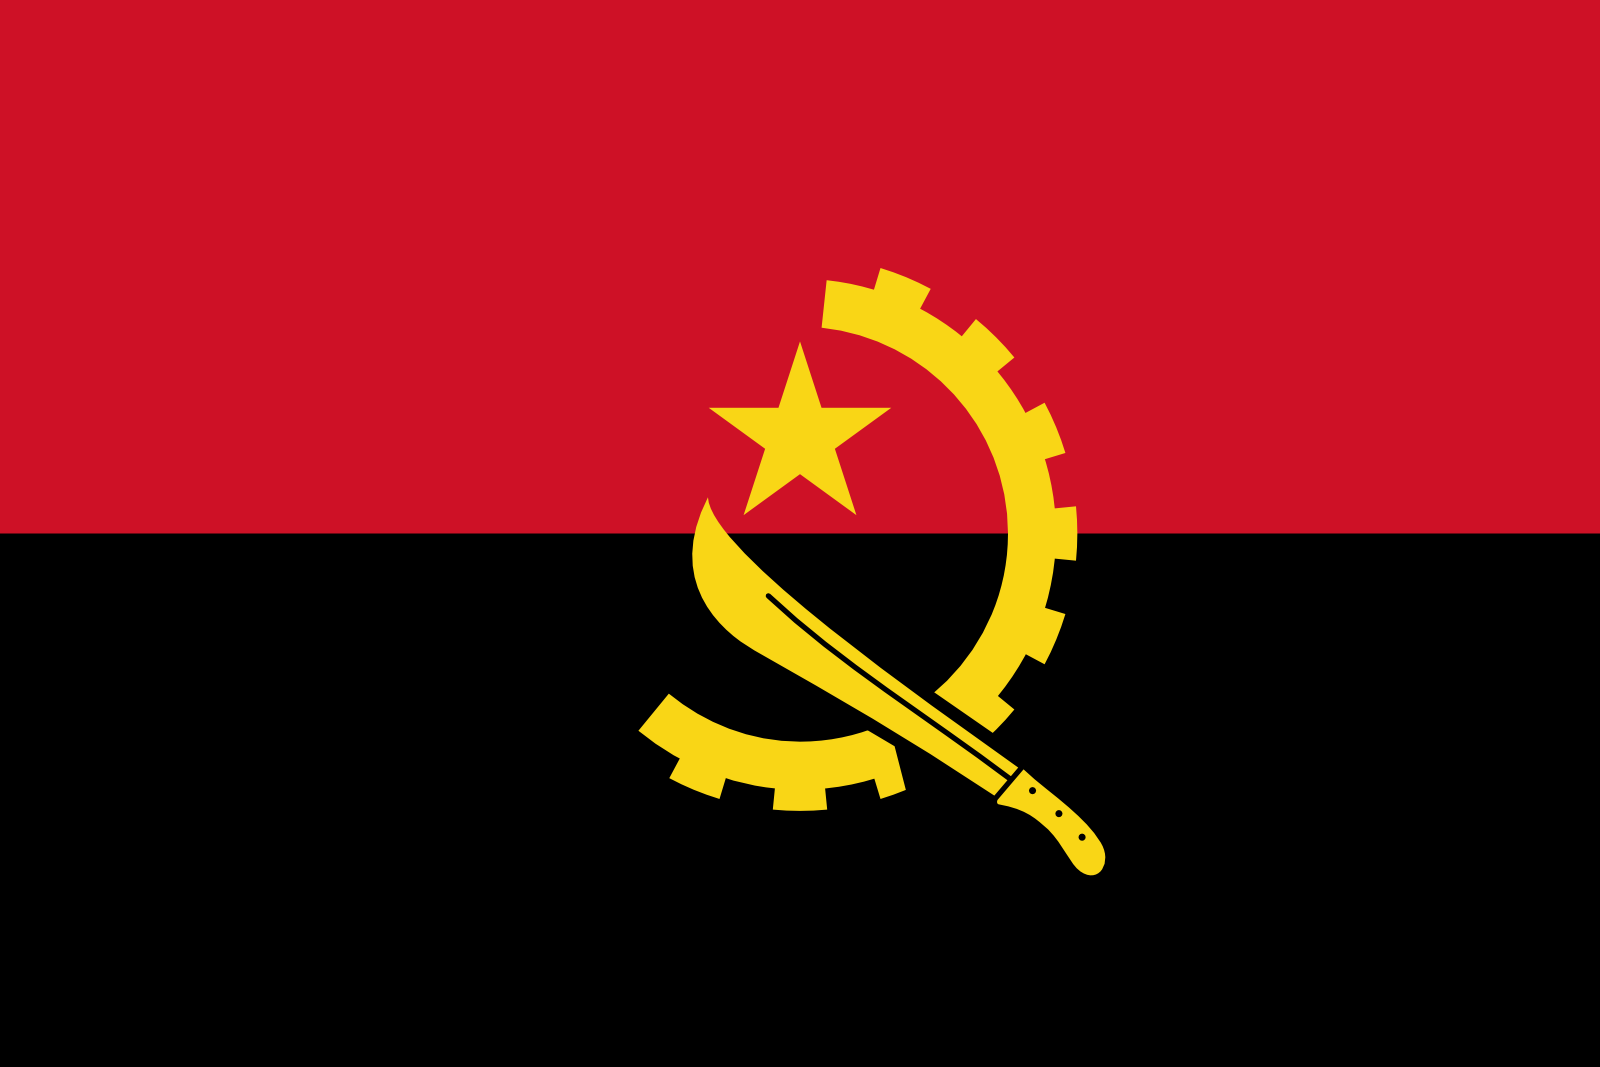 Angola | Flags of countries